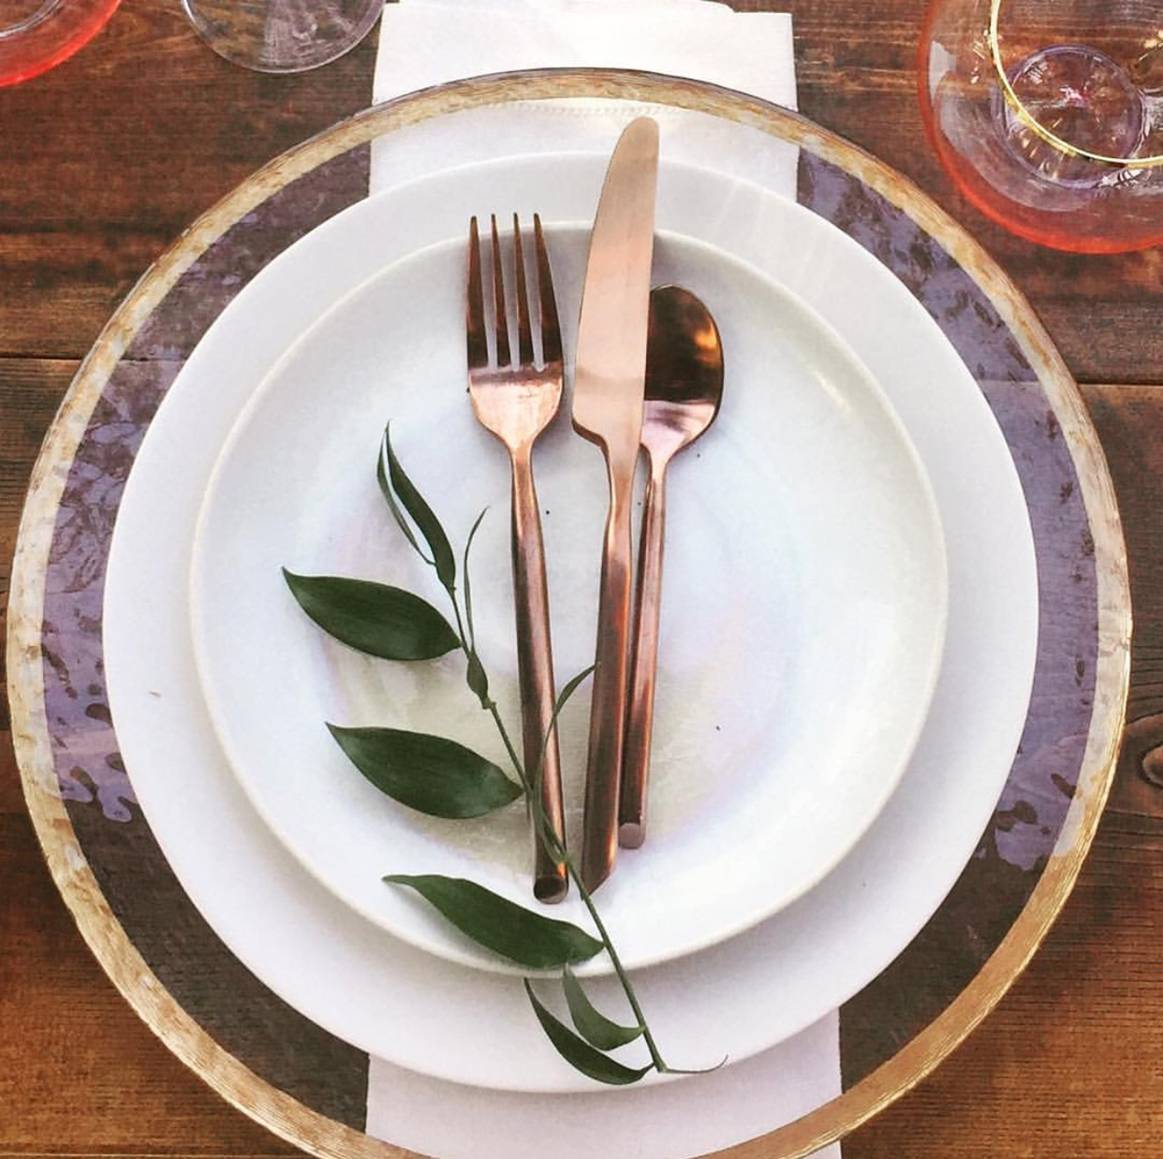 Pedersen S Event Rentals On Twitter Gold Rimmed Glass Charger White Bone Plate And Copper Flatware Perfection Culinary Capers Eventrentals Eventdecor Https T Co Izutlekyfo